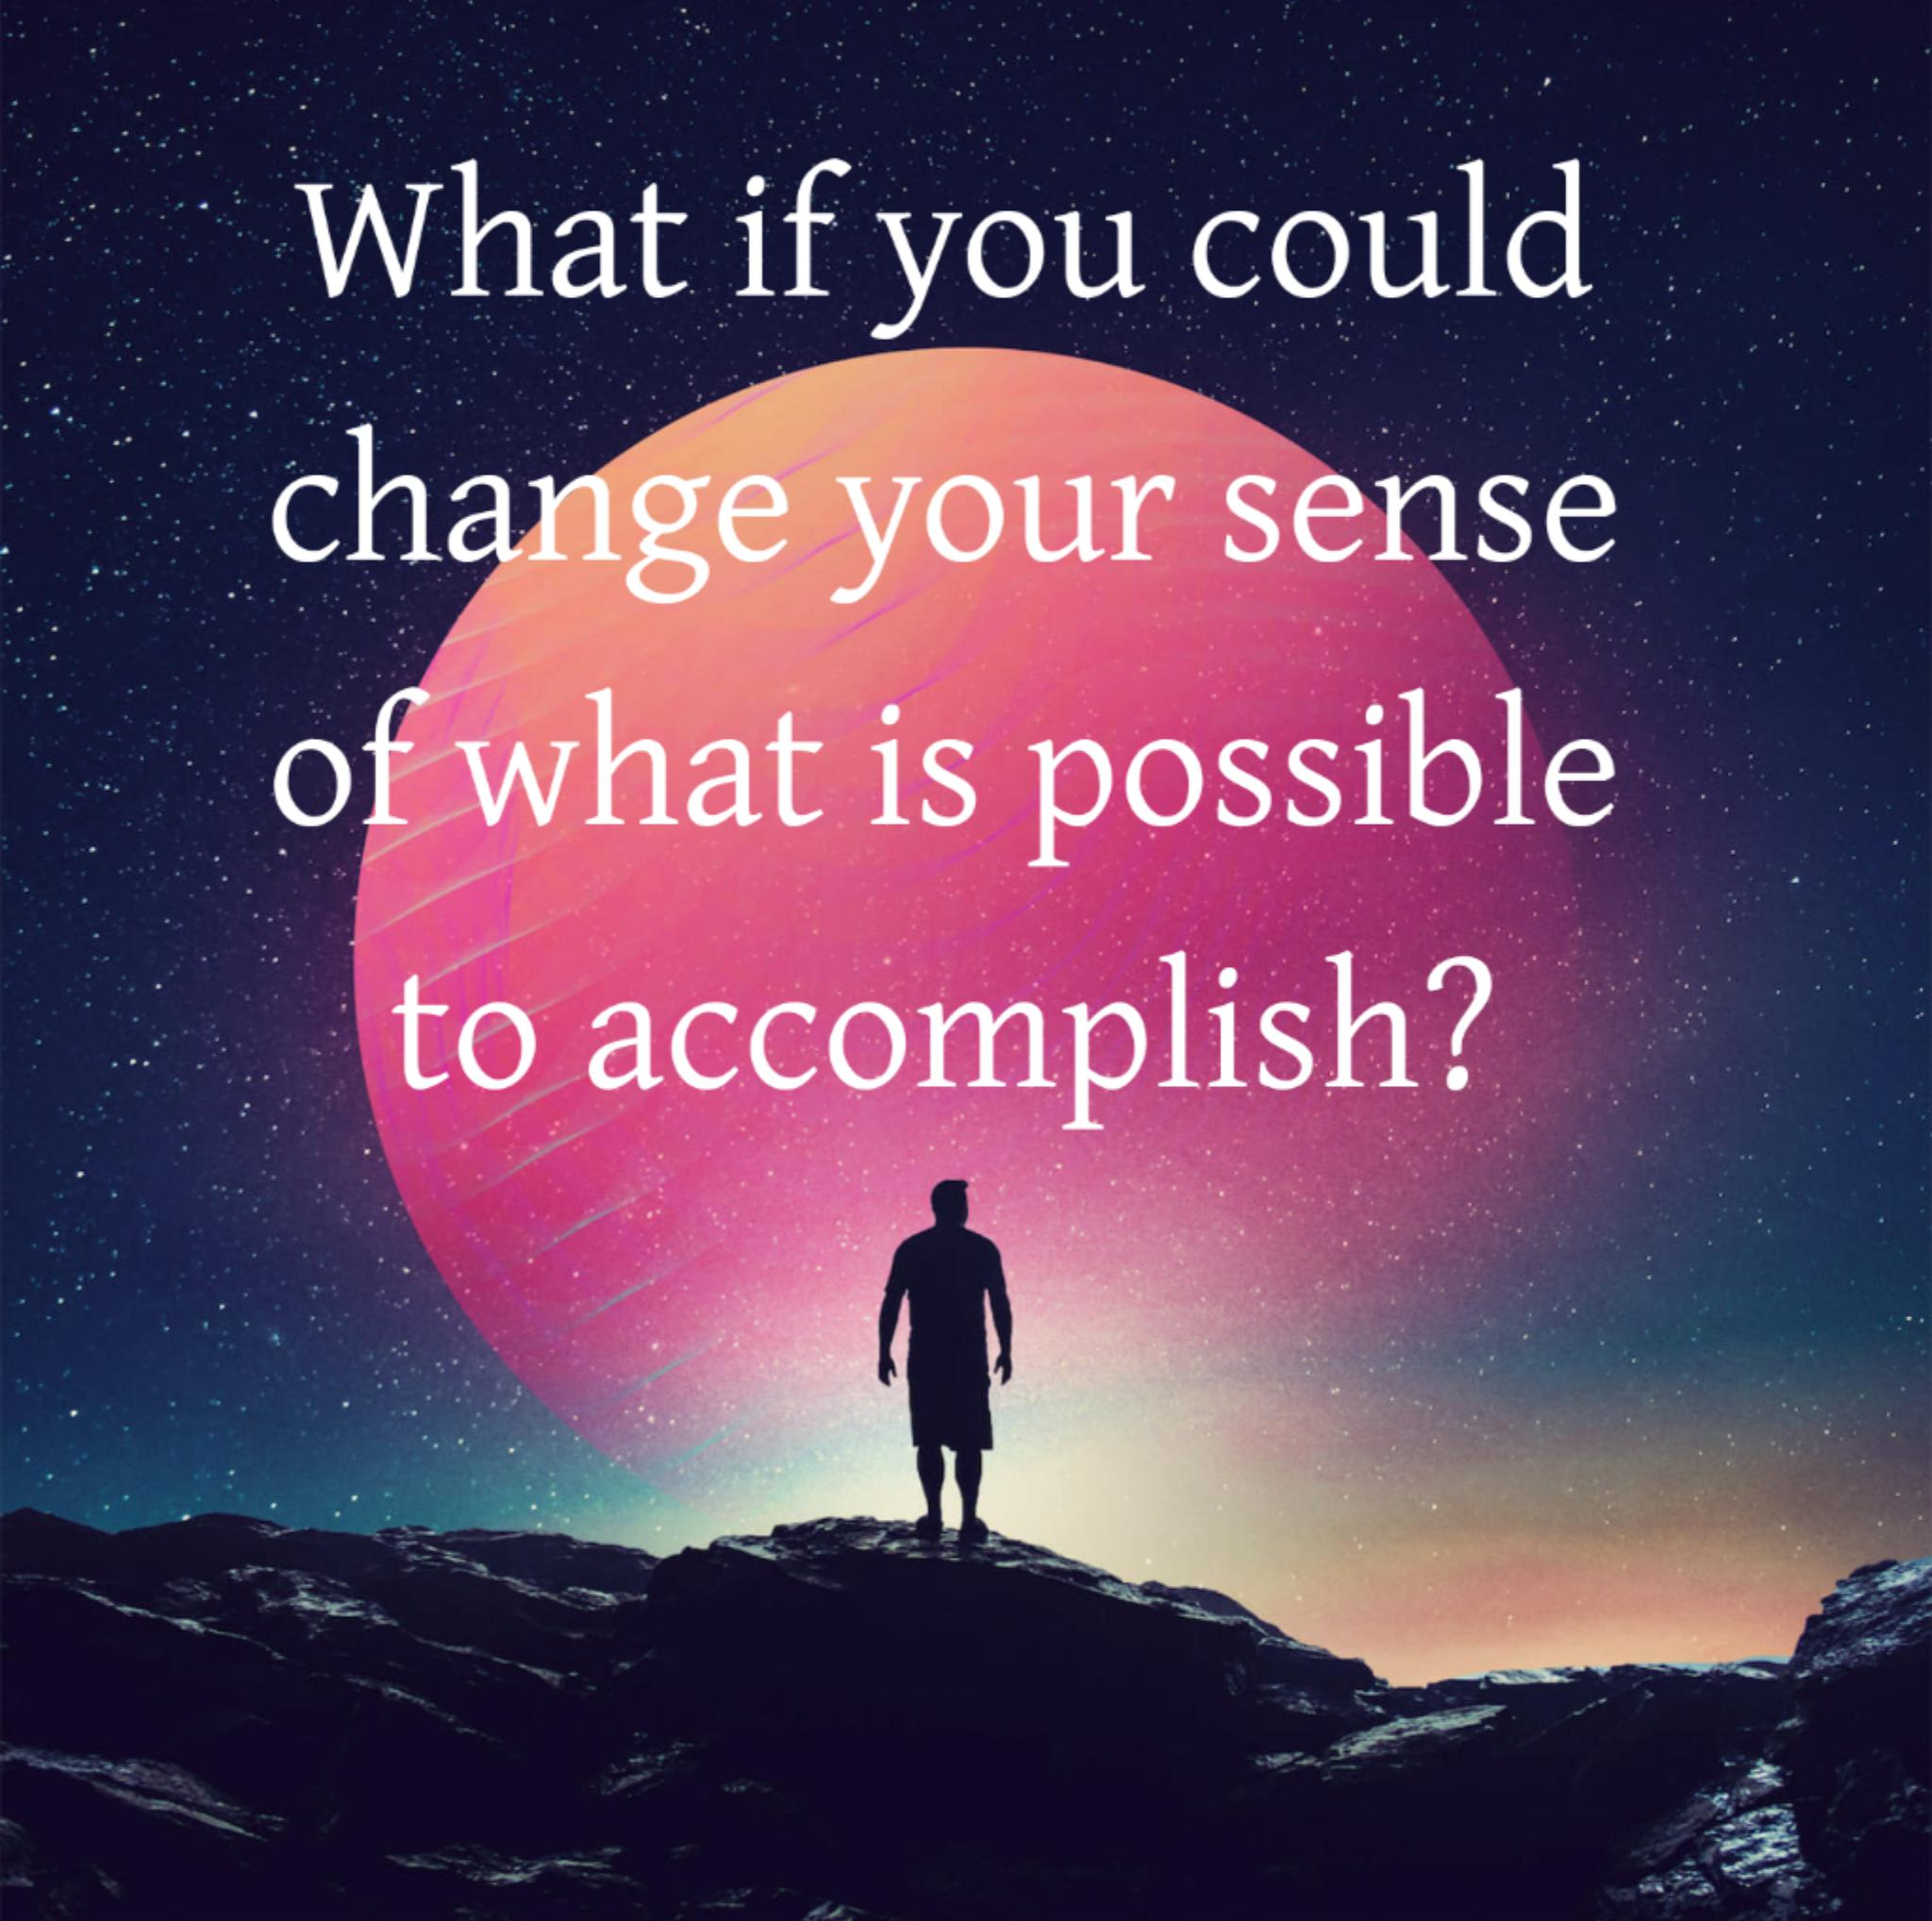 [Image] Change your sense of what's possible